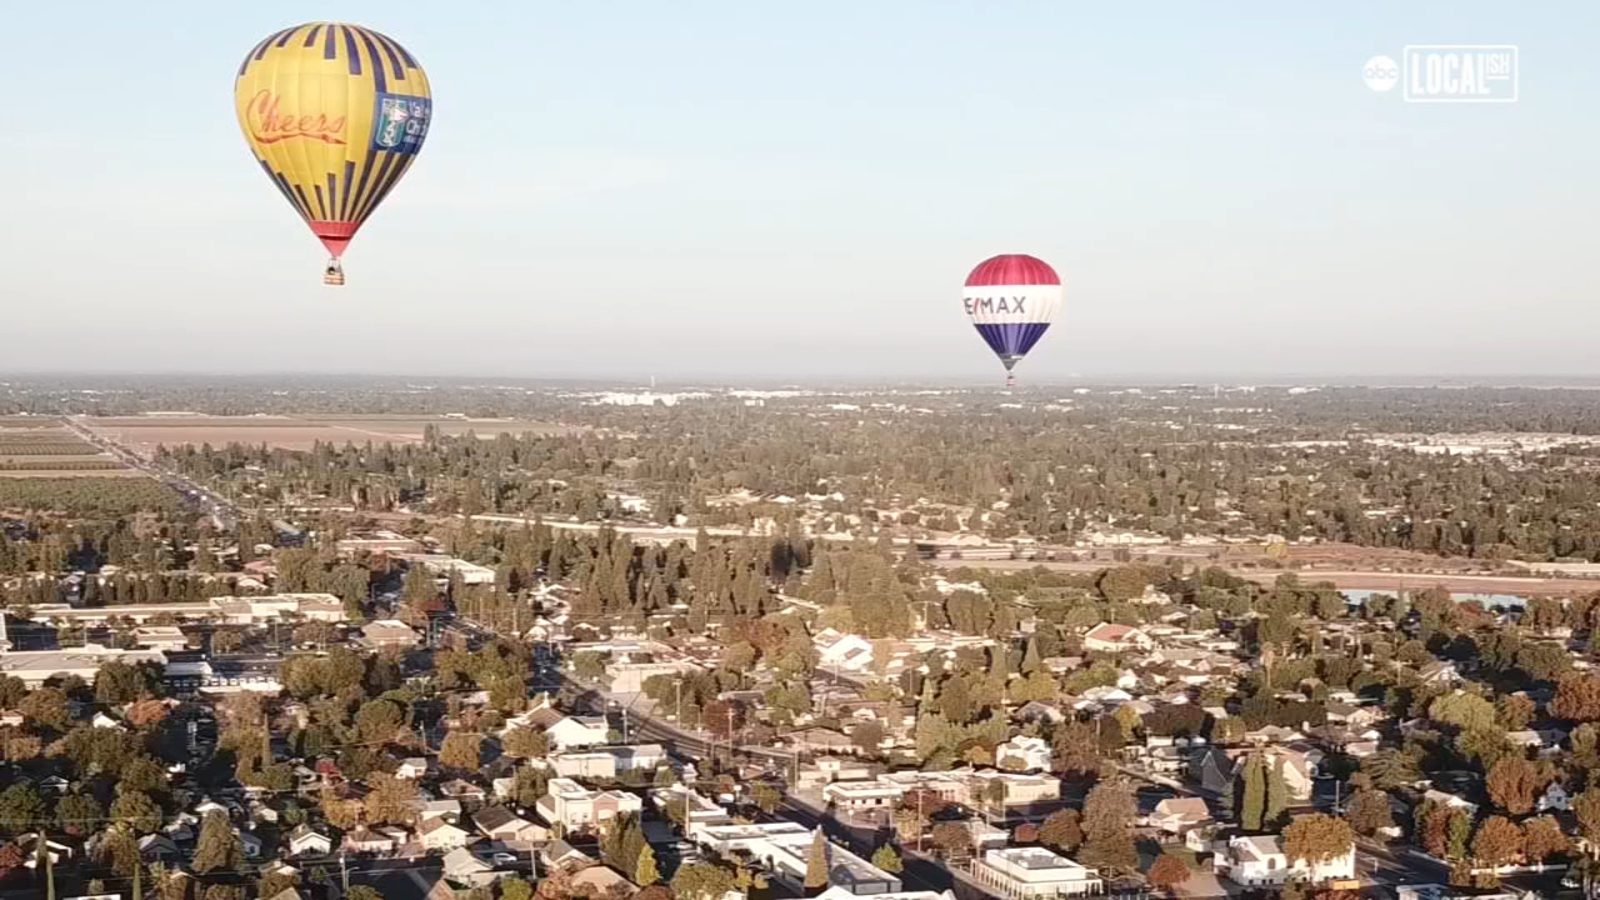 Hot air balloons take to the skies above Clovis